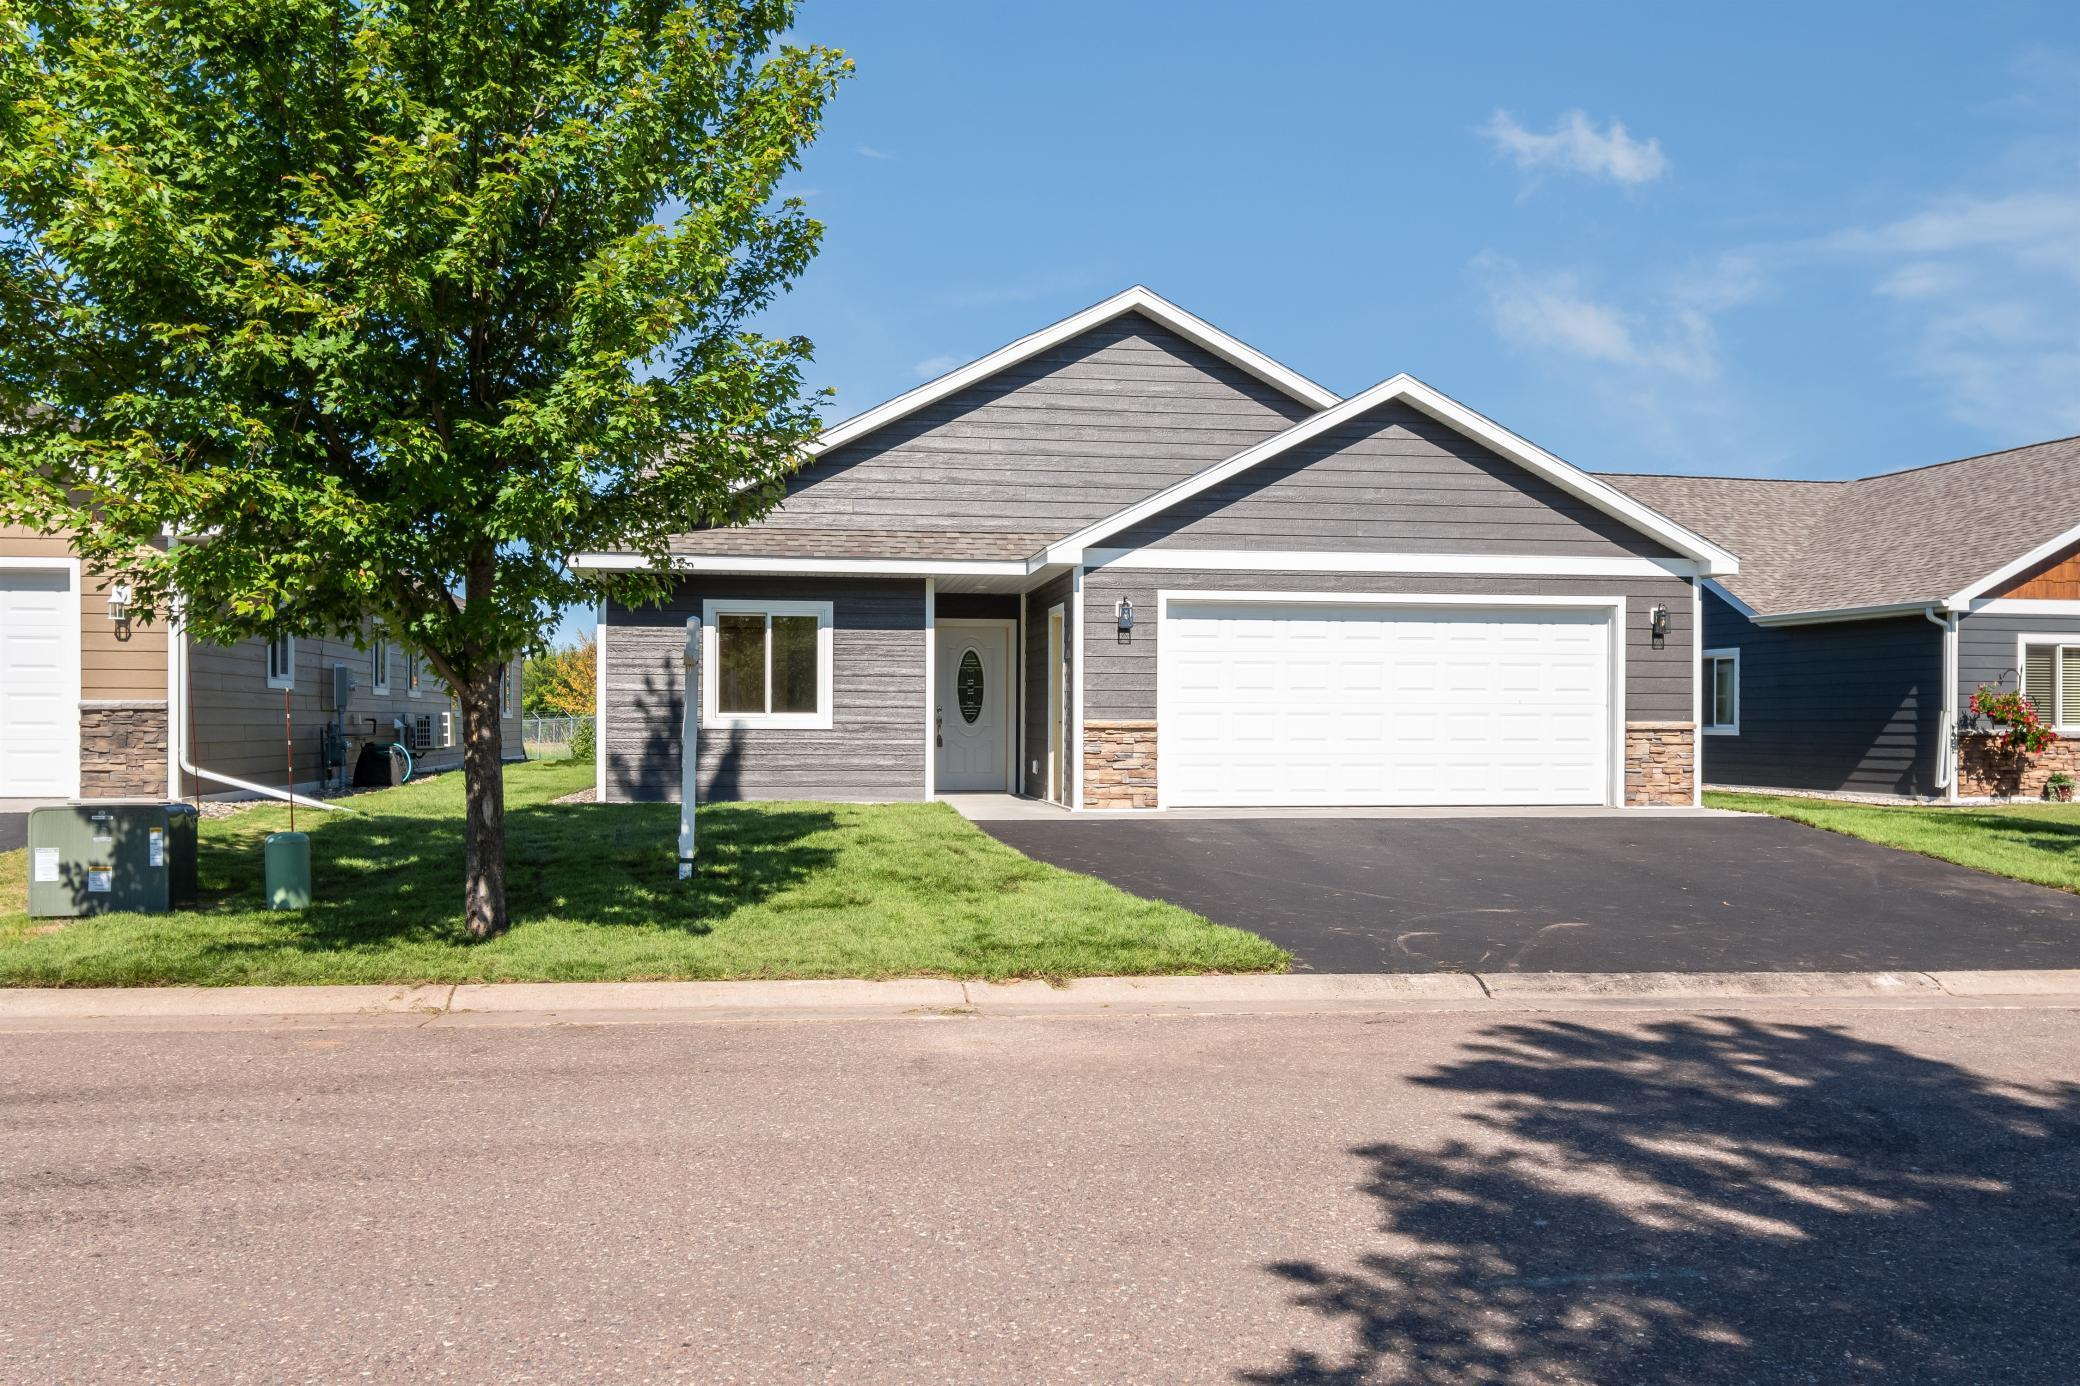 54 Billings Lane Property Photo - Superior, WI real estate listing